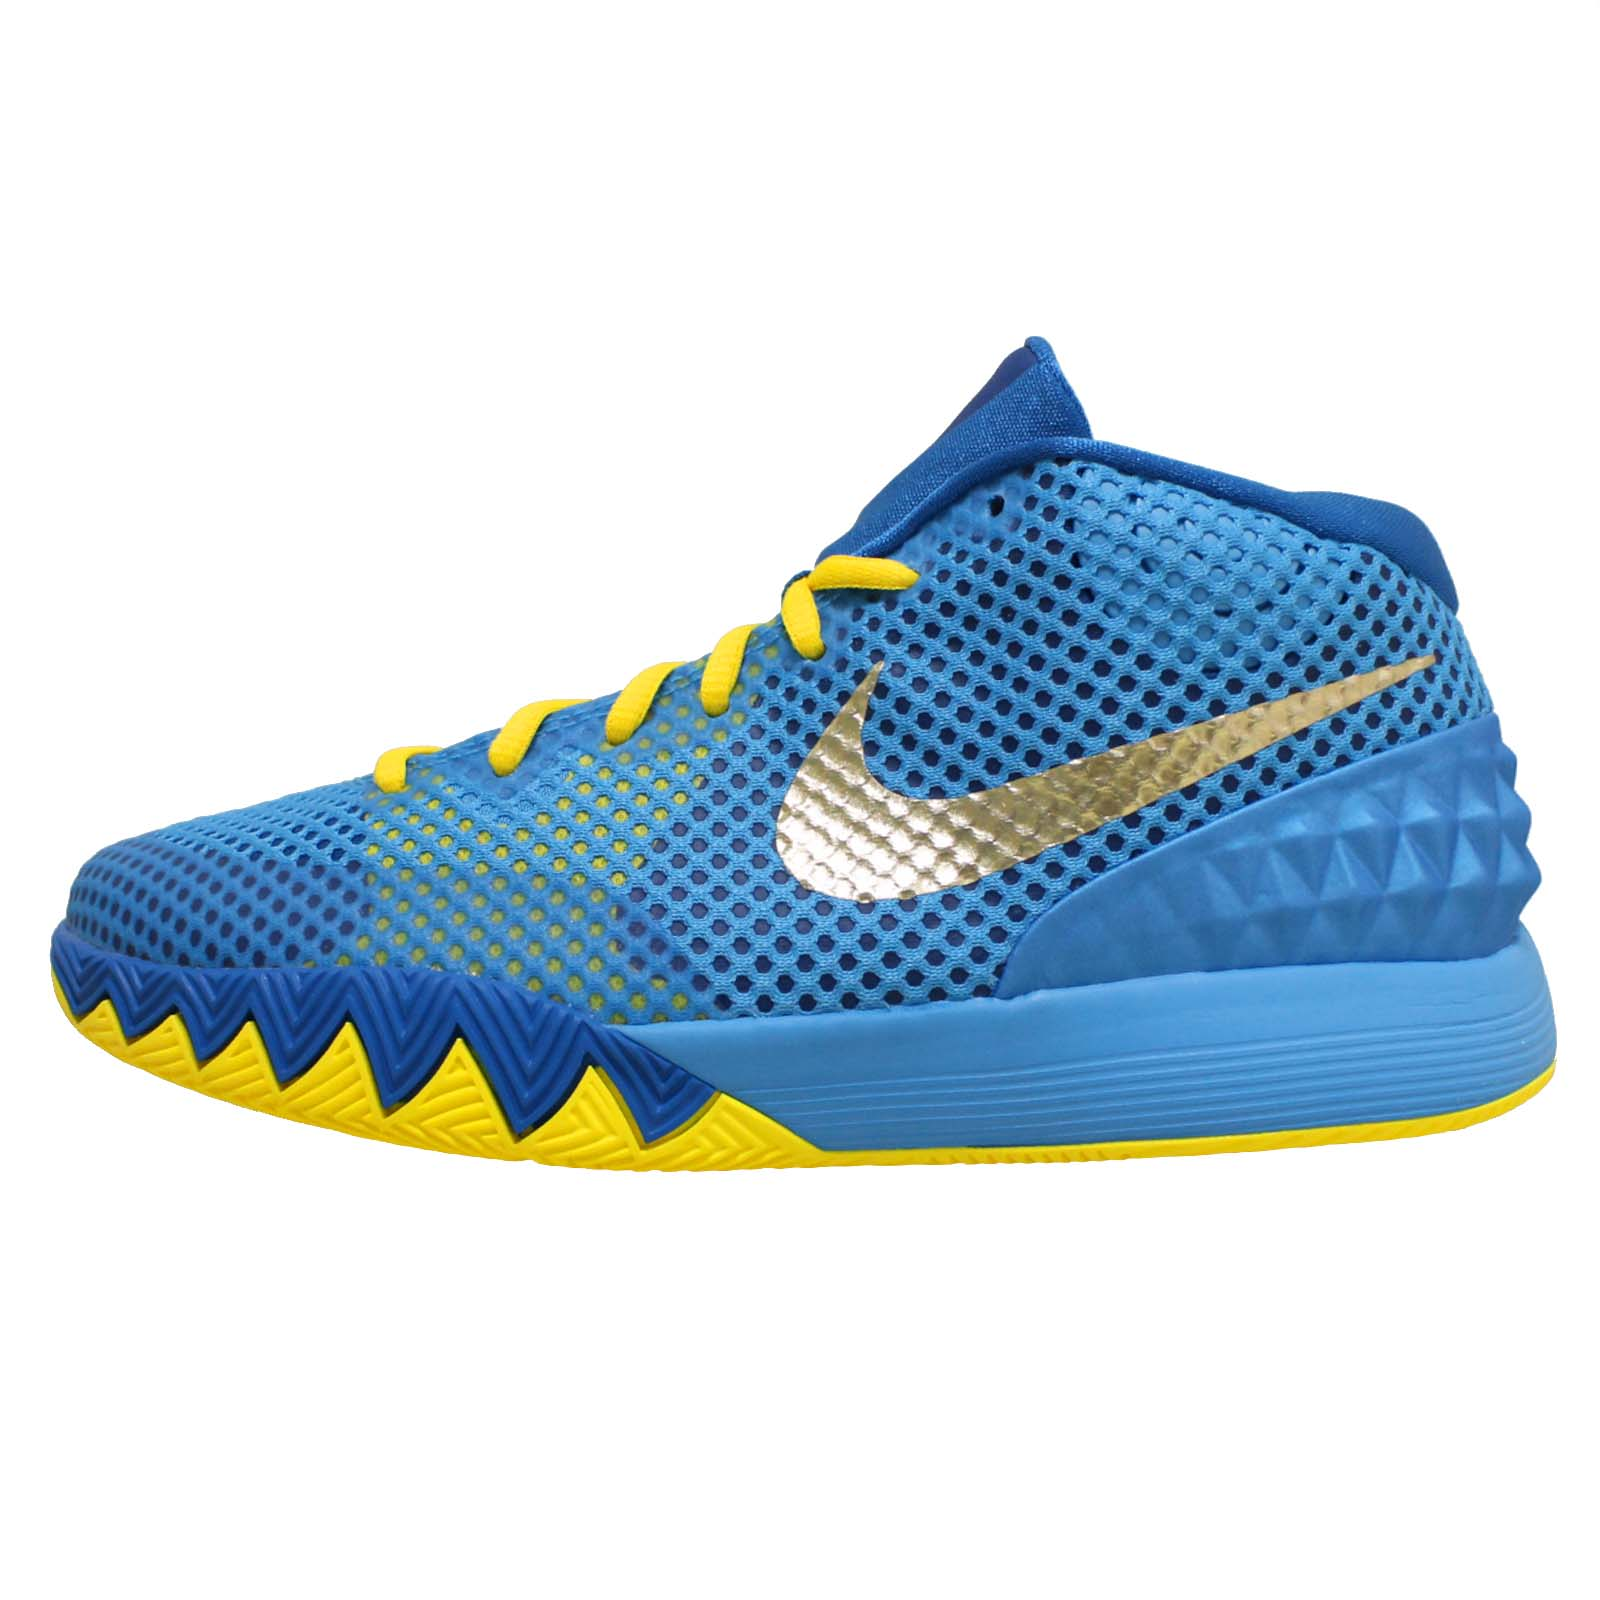 Kyrie Irving Shoes Kids